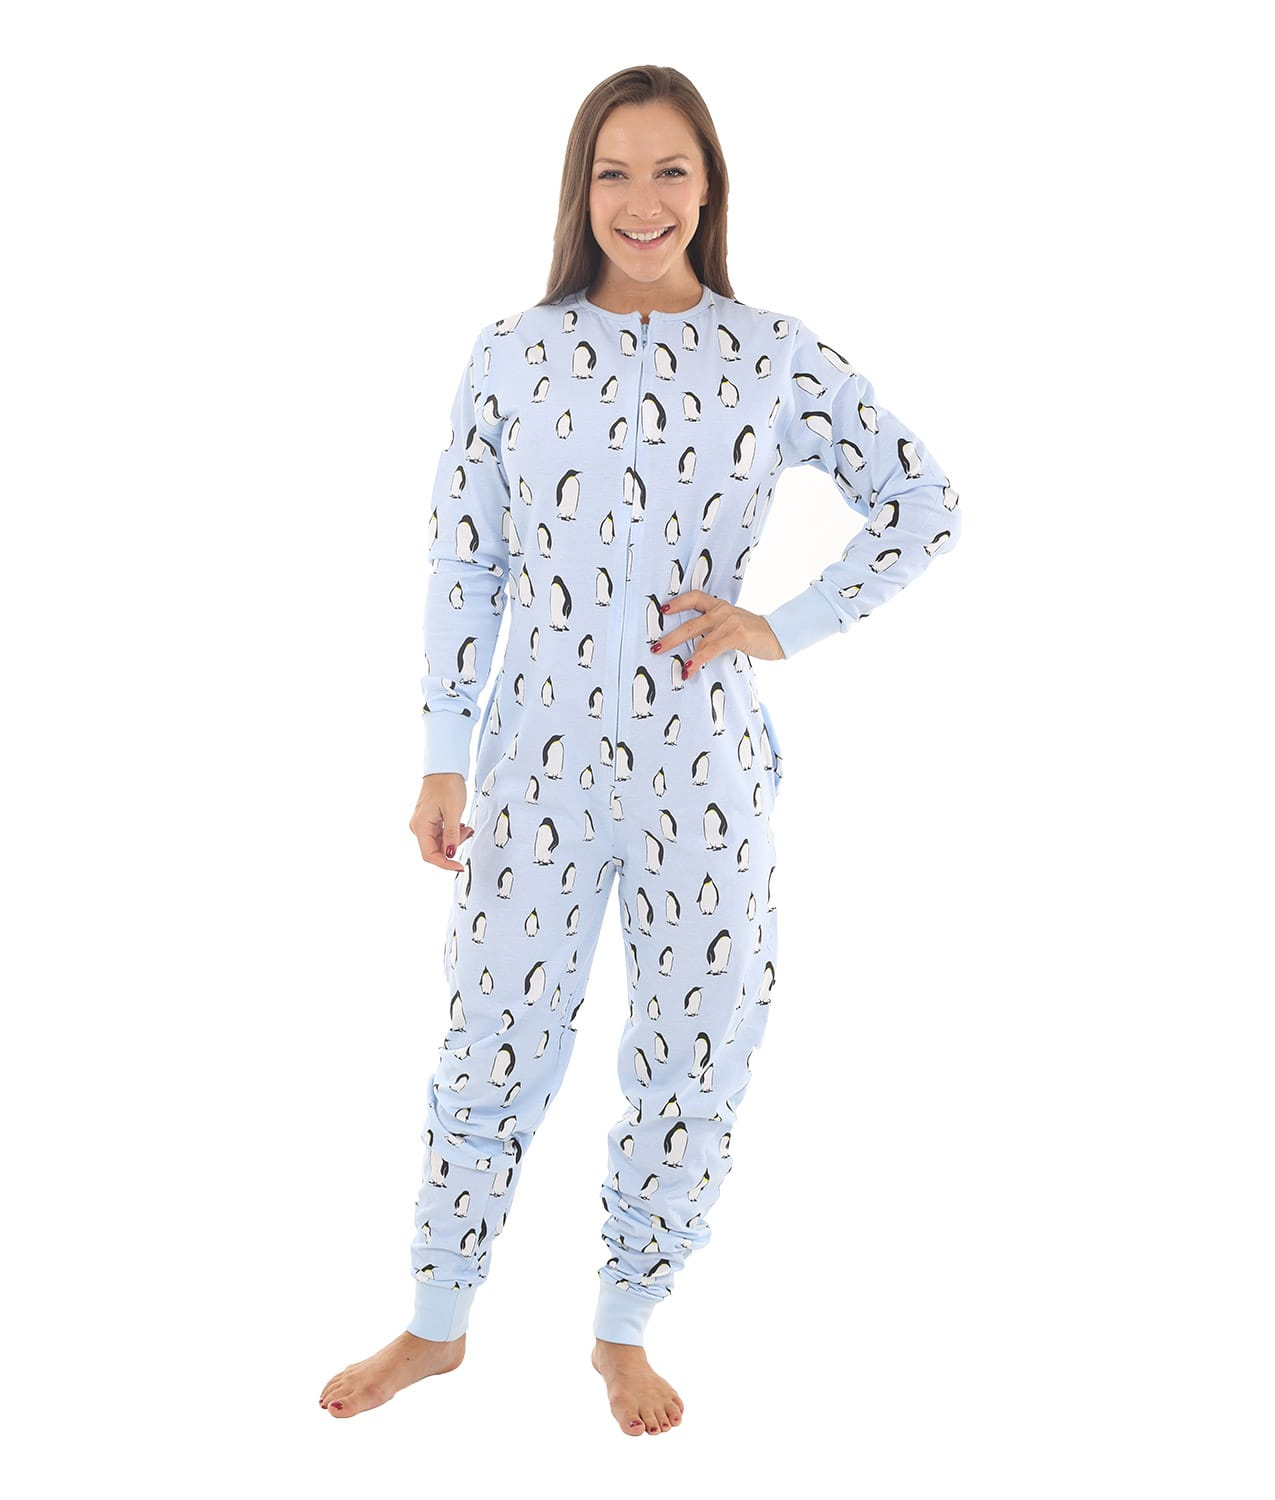 Australias number one onesies online store with a large range of styles and sizes that are high quality, comfy and fun at great prices for kids and adults! Aust. Australias number one onesies online store with a large range of styles and sizes that are high quality, comfy and fun at great prices for kids and adults!.